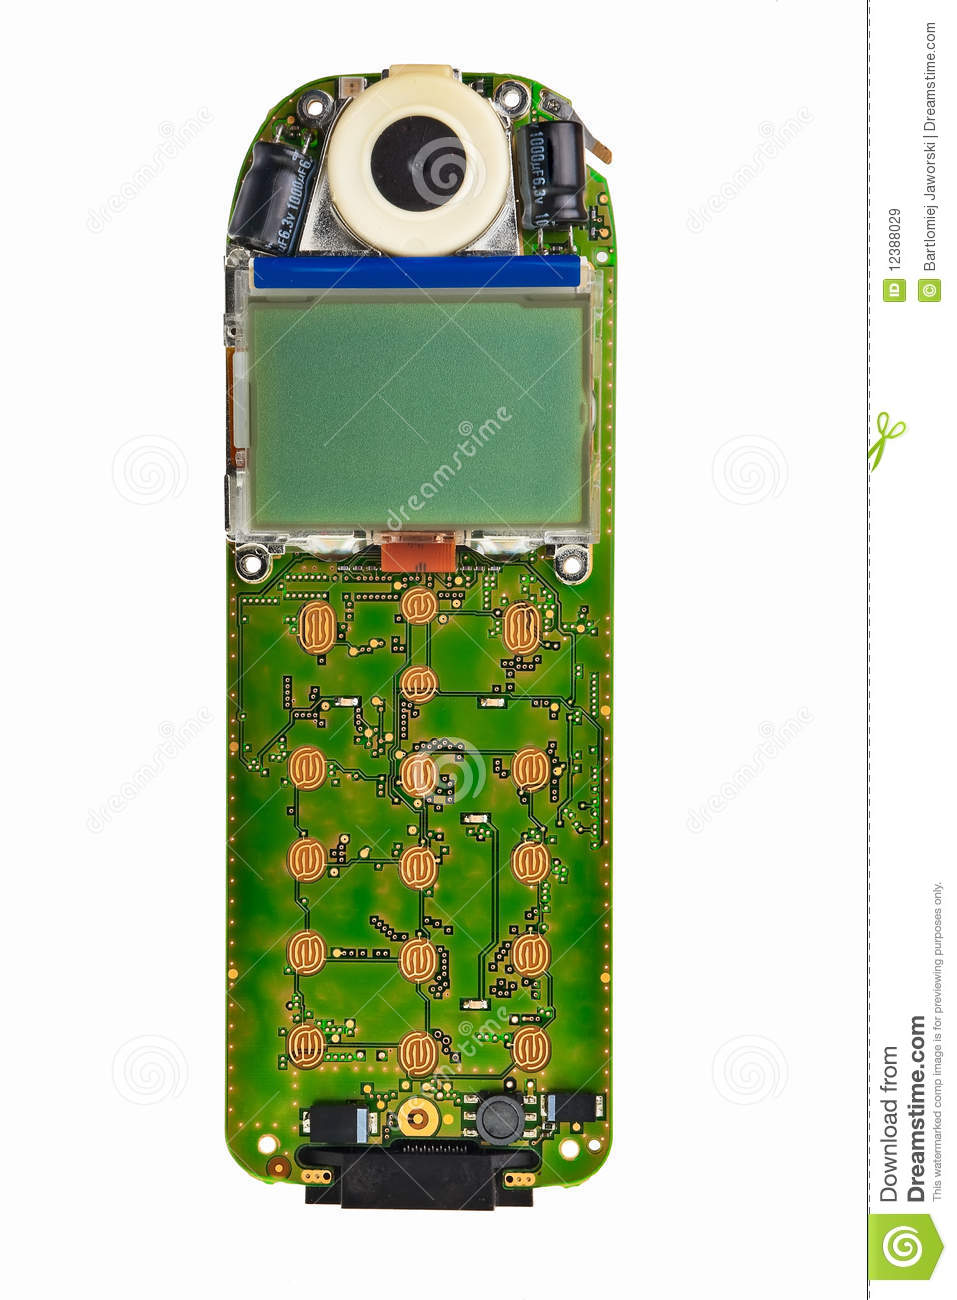 All Mobile Pcb Circuit Diagram Wiring Diagrams For Dummies Phone Printed Board Royalty Free Stock Images Layout